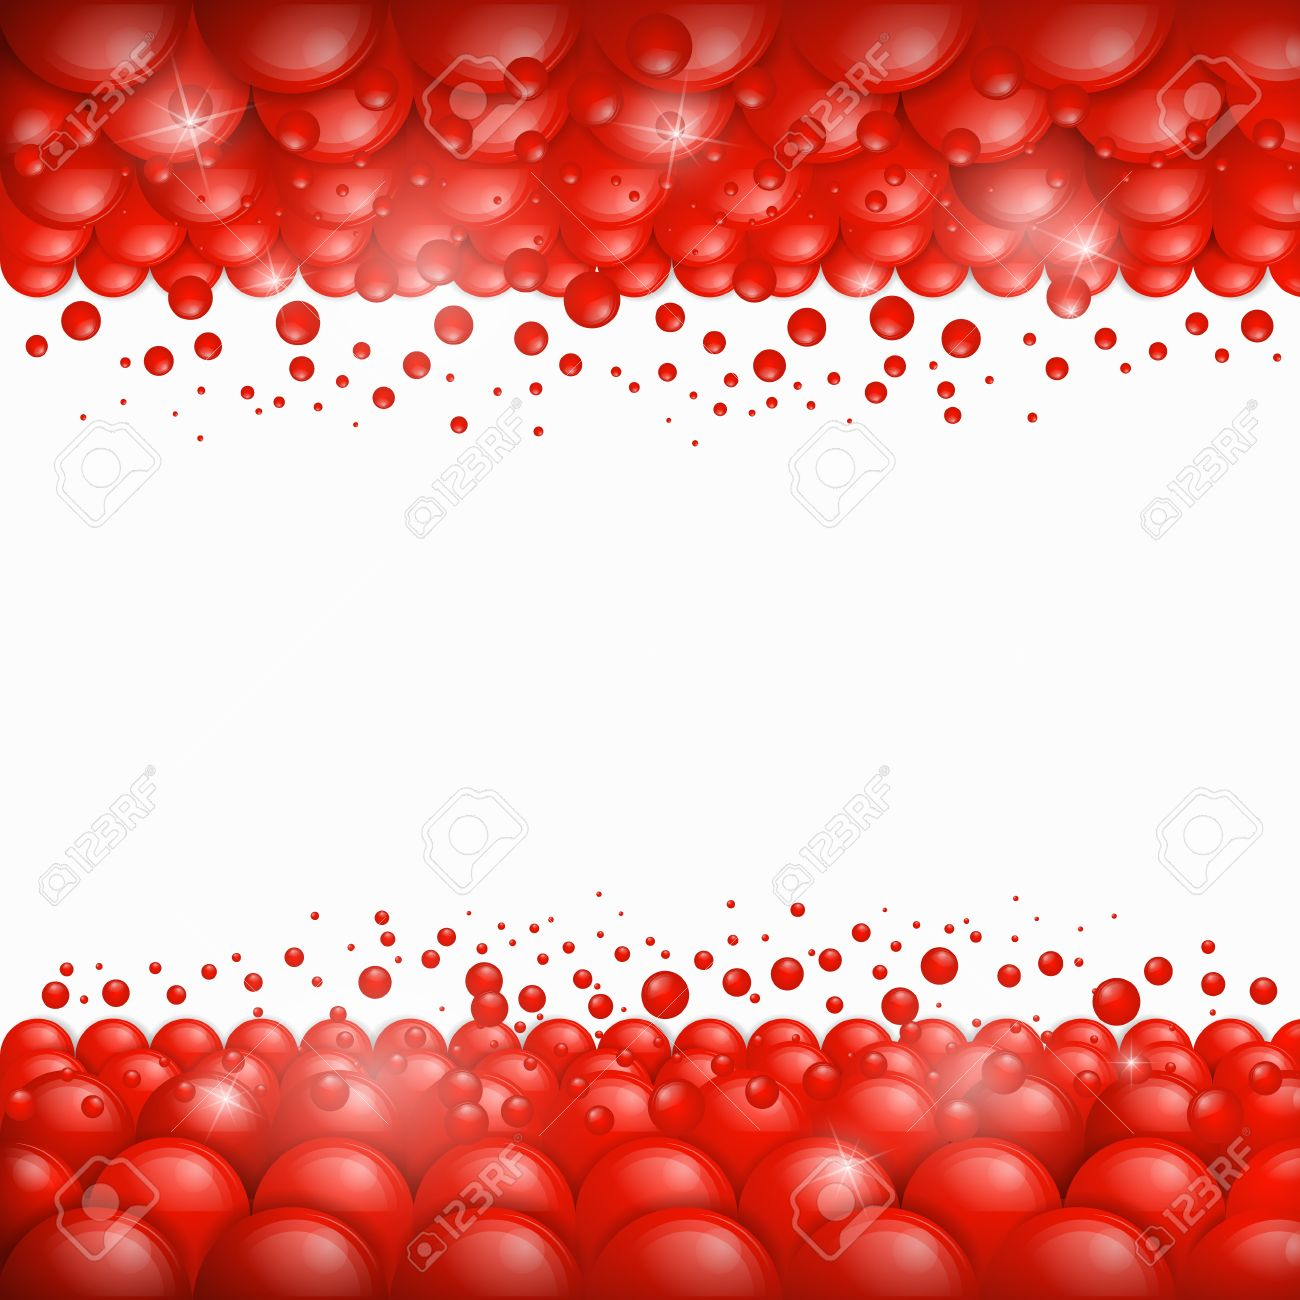 vector background red bubbles theme royalty free cliparts vectors